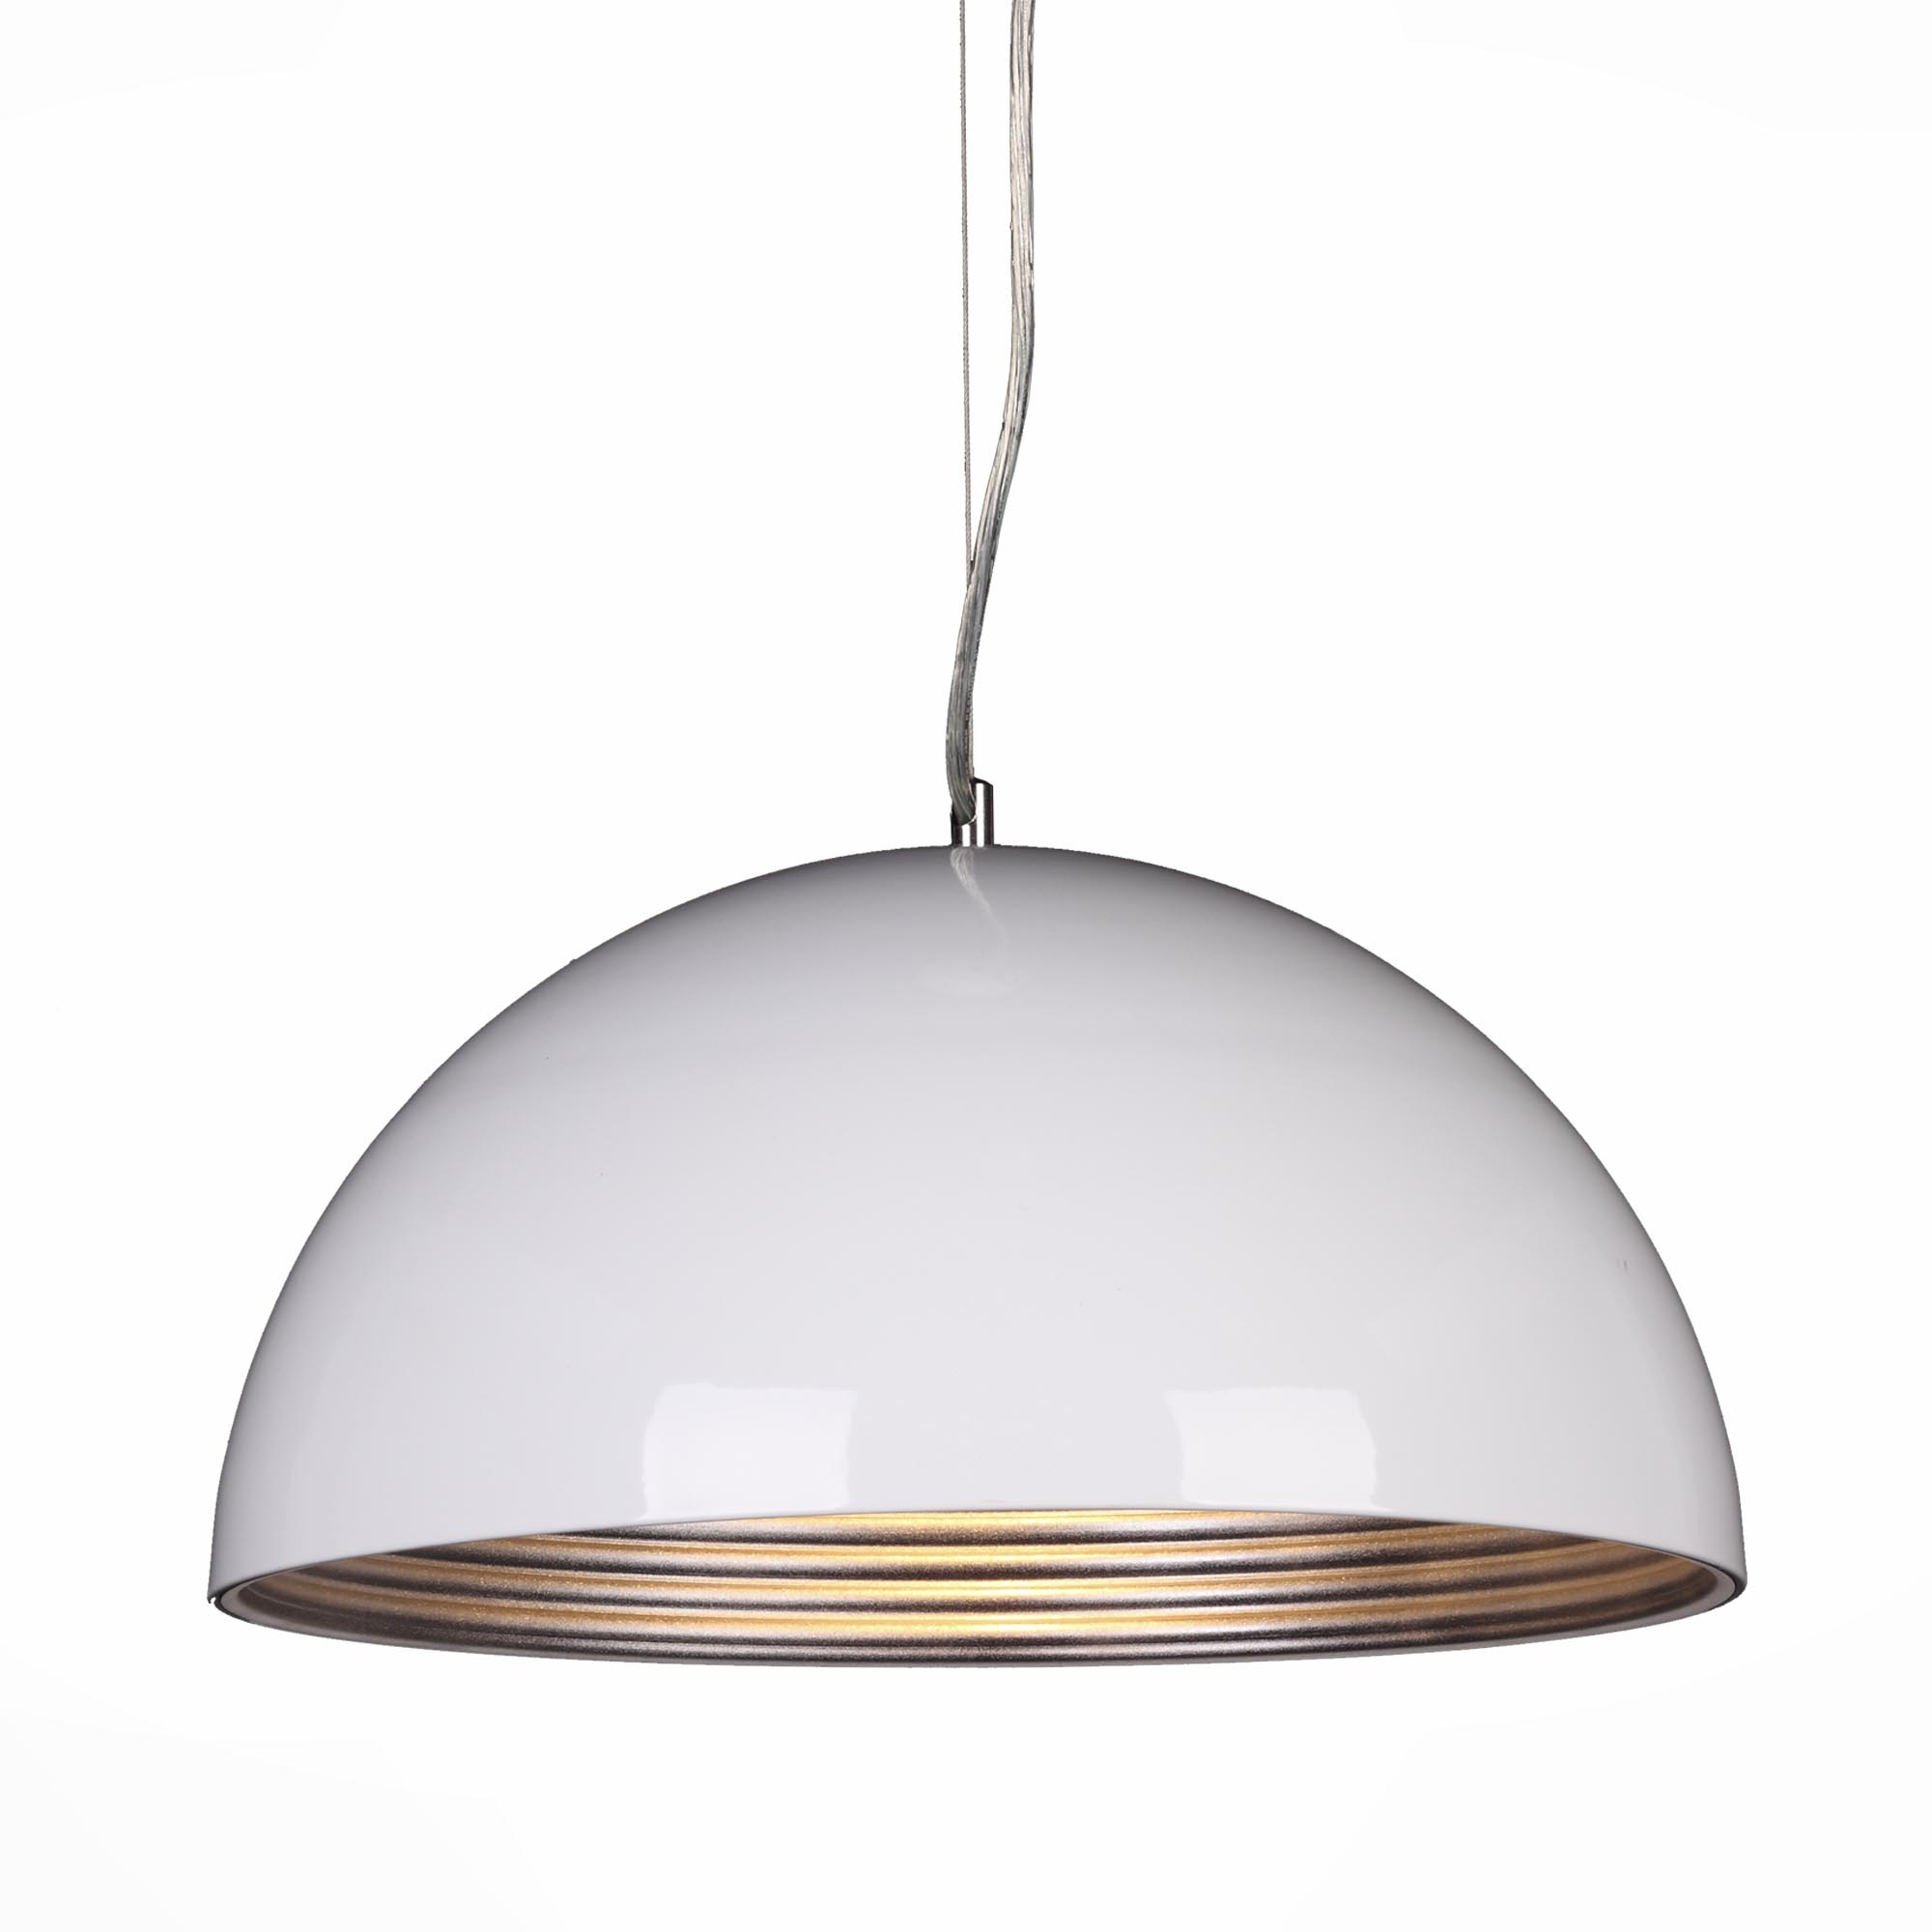 Светильник ST Luce SL279.503.01 Tappo